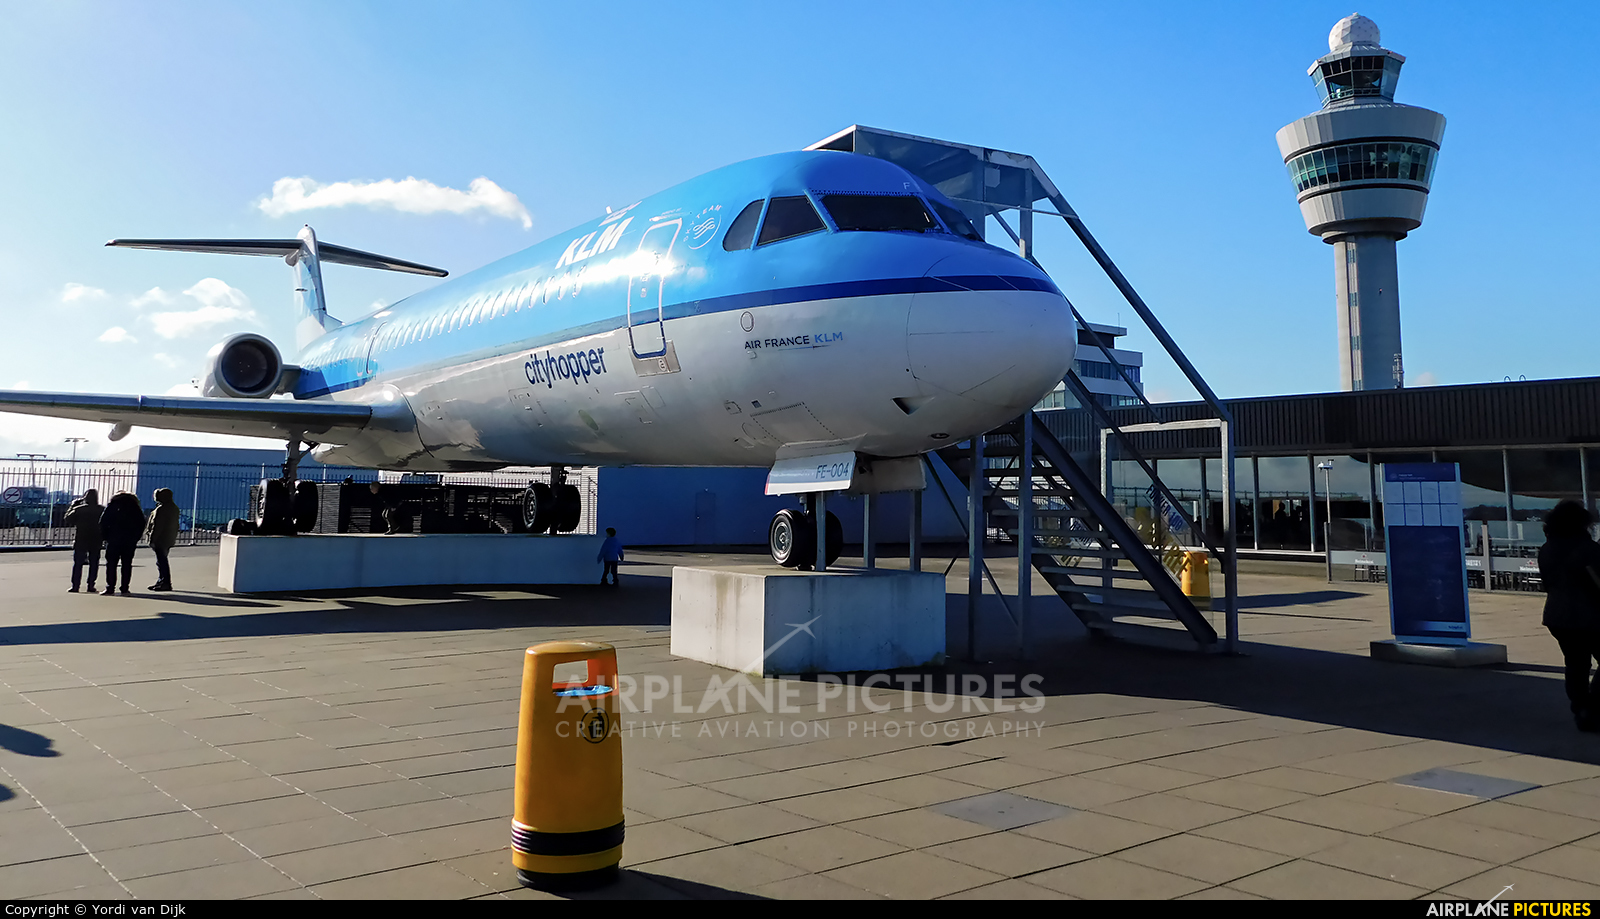 KLM Cityhopper PH-OFE aircraft at Amsterdam - Schiphol